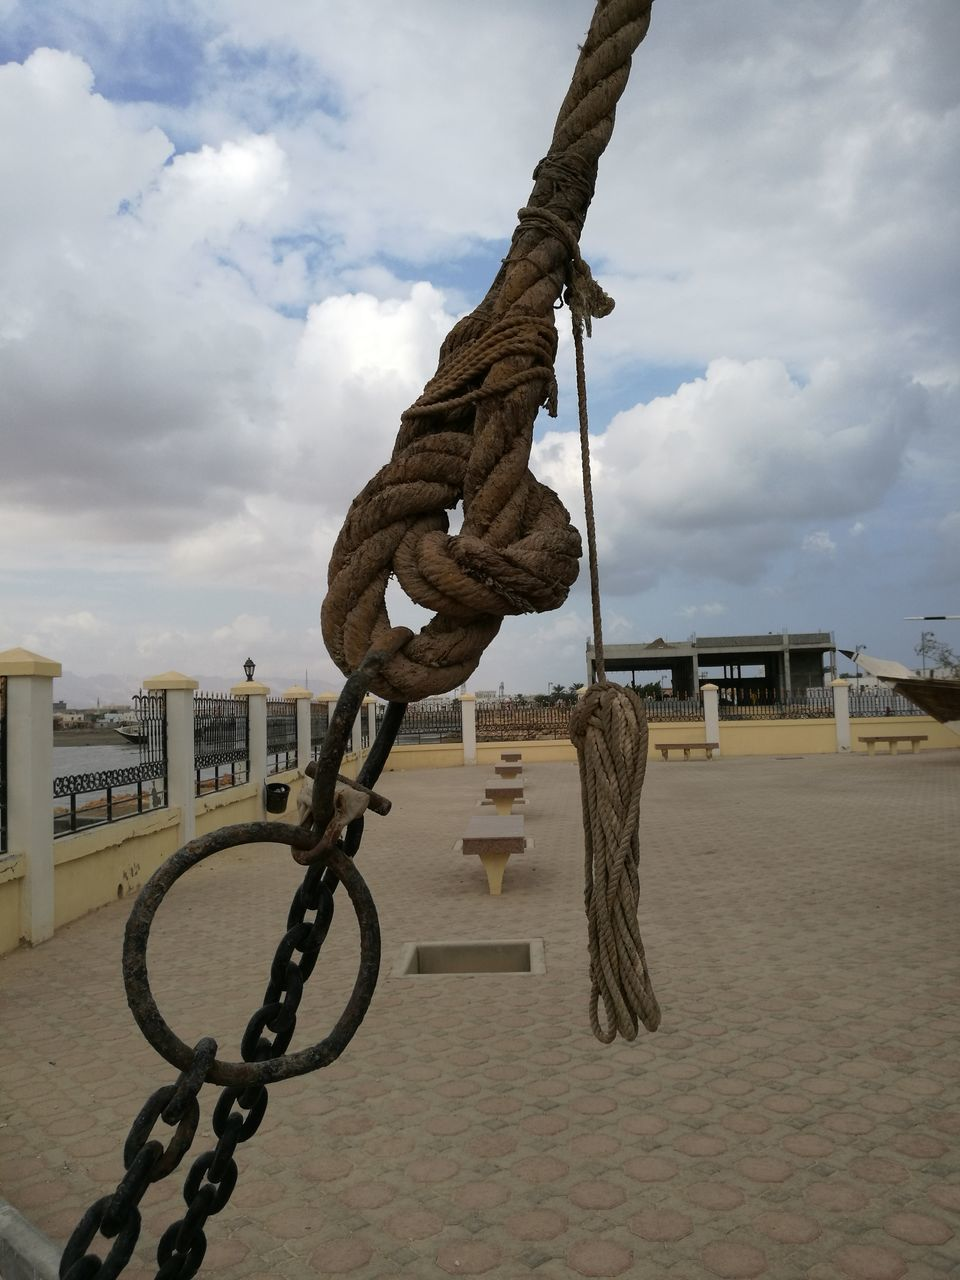 rope, sky, strength, cloud - sky, chain, built structure, day, outdoors, low angle view, architecture, hanging, no people